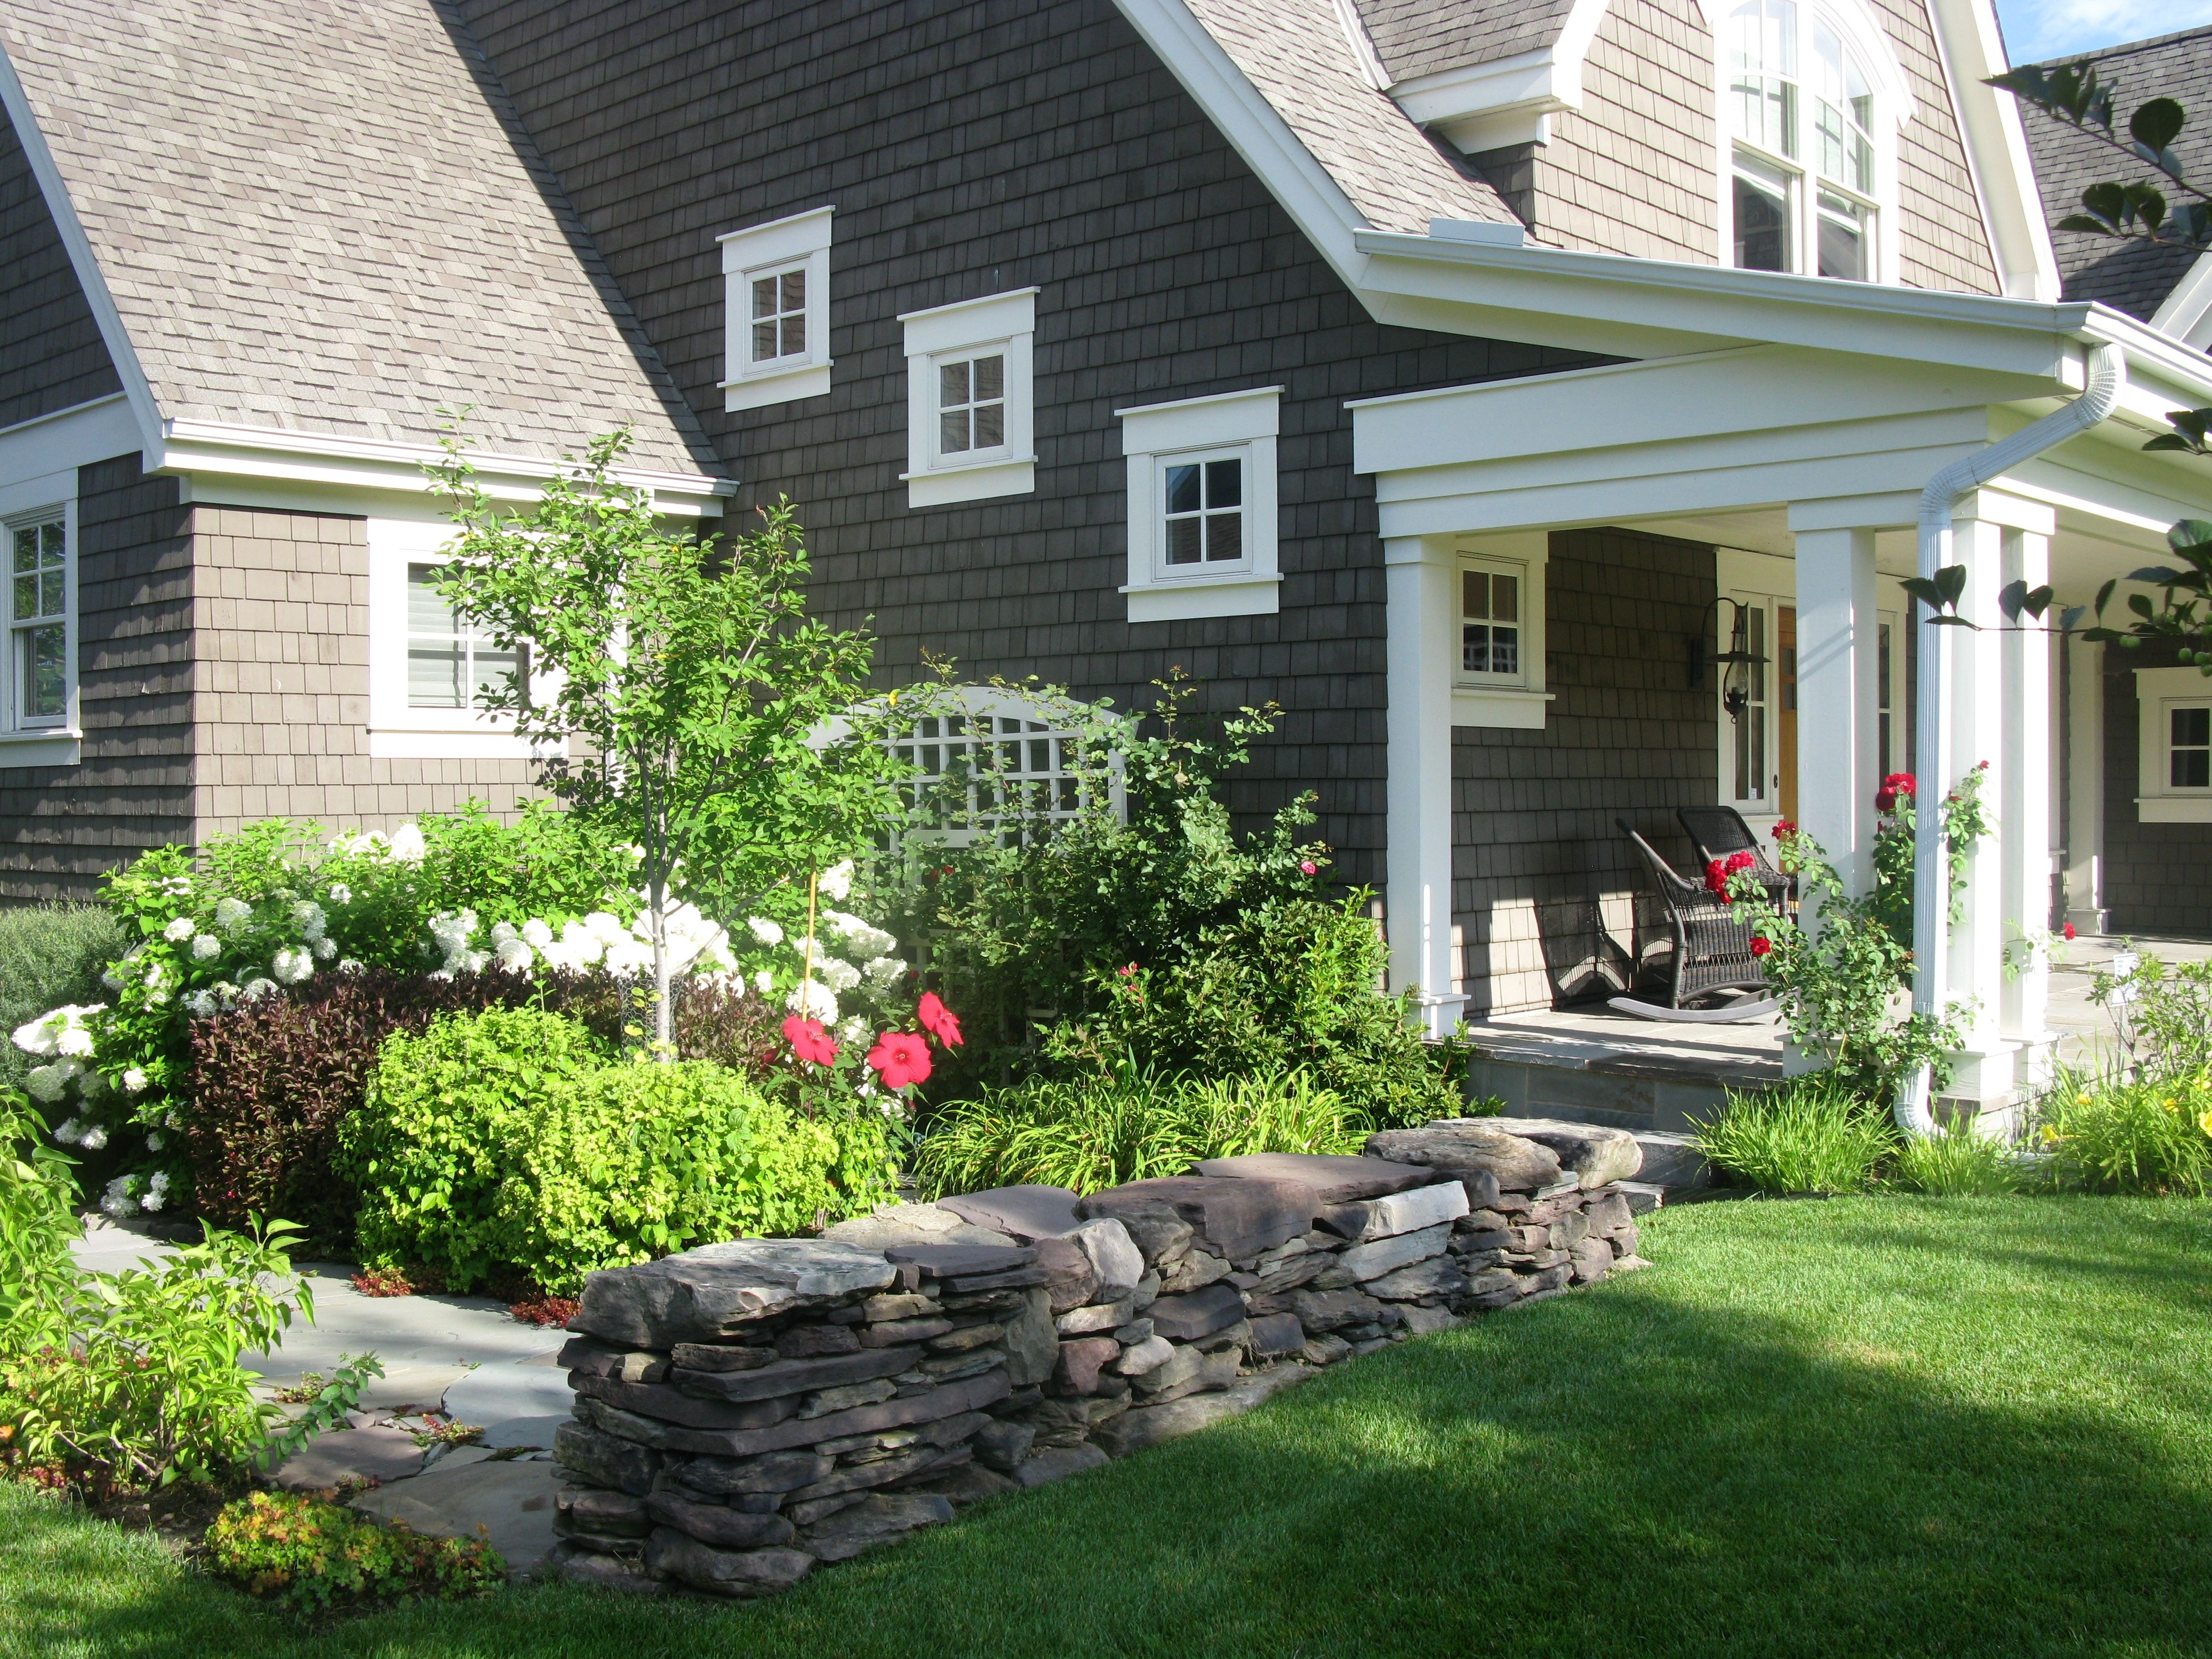 Landscaping Ideas For Front Of House With Porch To Creating